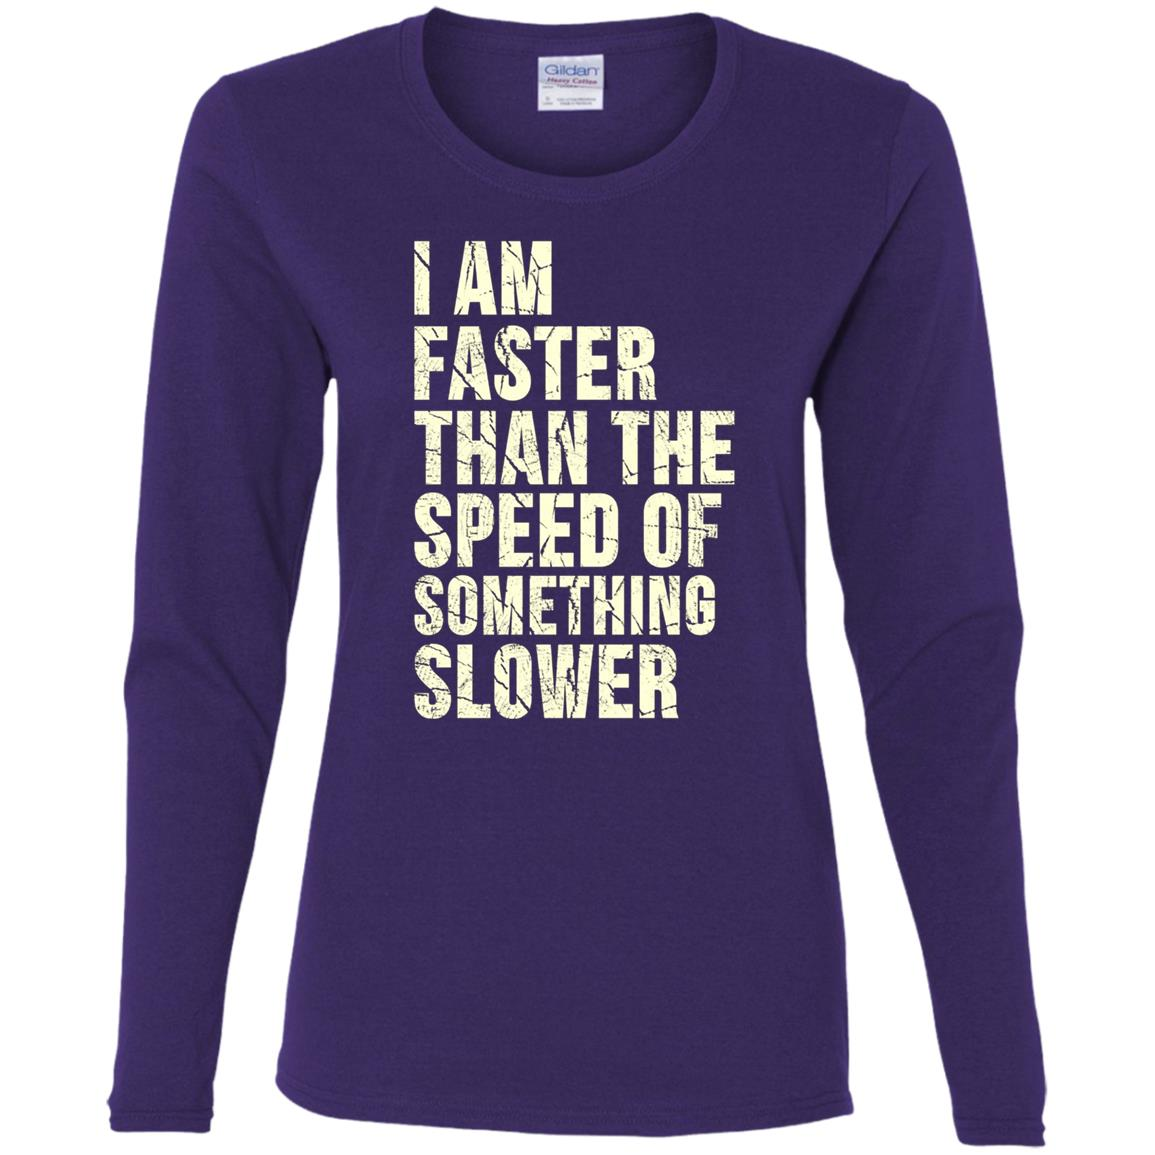 I Am Faster Than the Speed of Something Slower Women Long Sleeve T-Shirt